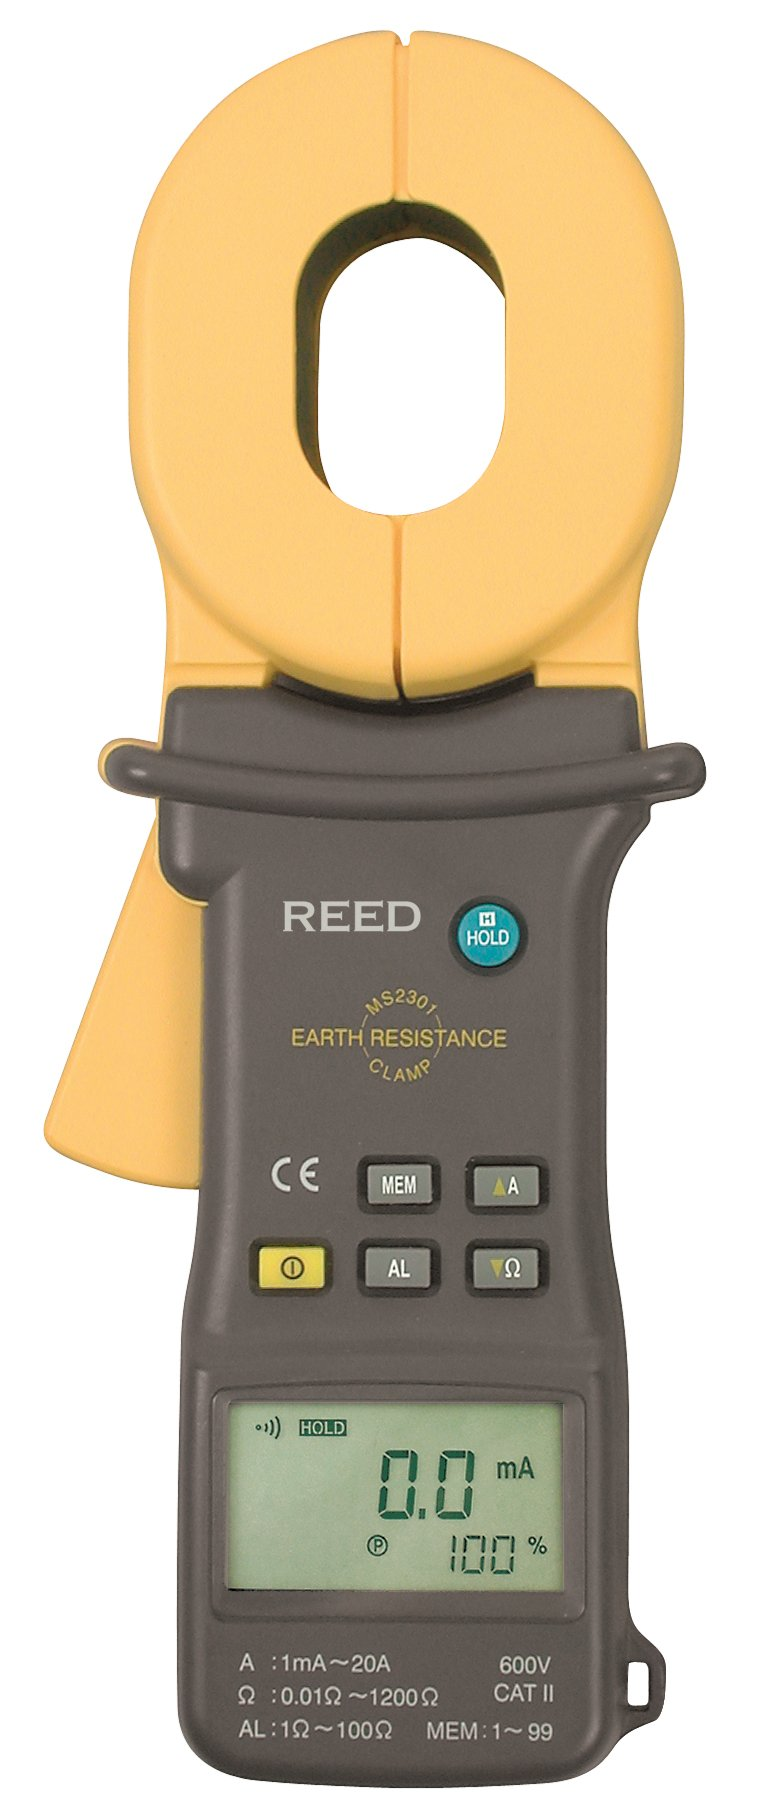 REED Instruments MS2301 Clamp-on Ground Resistance Tester